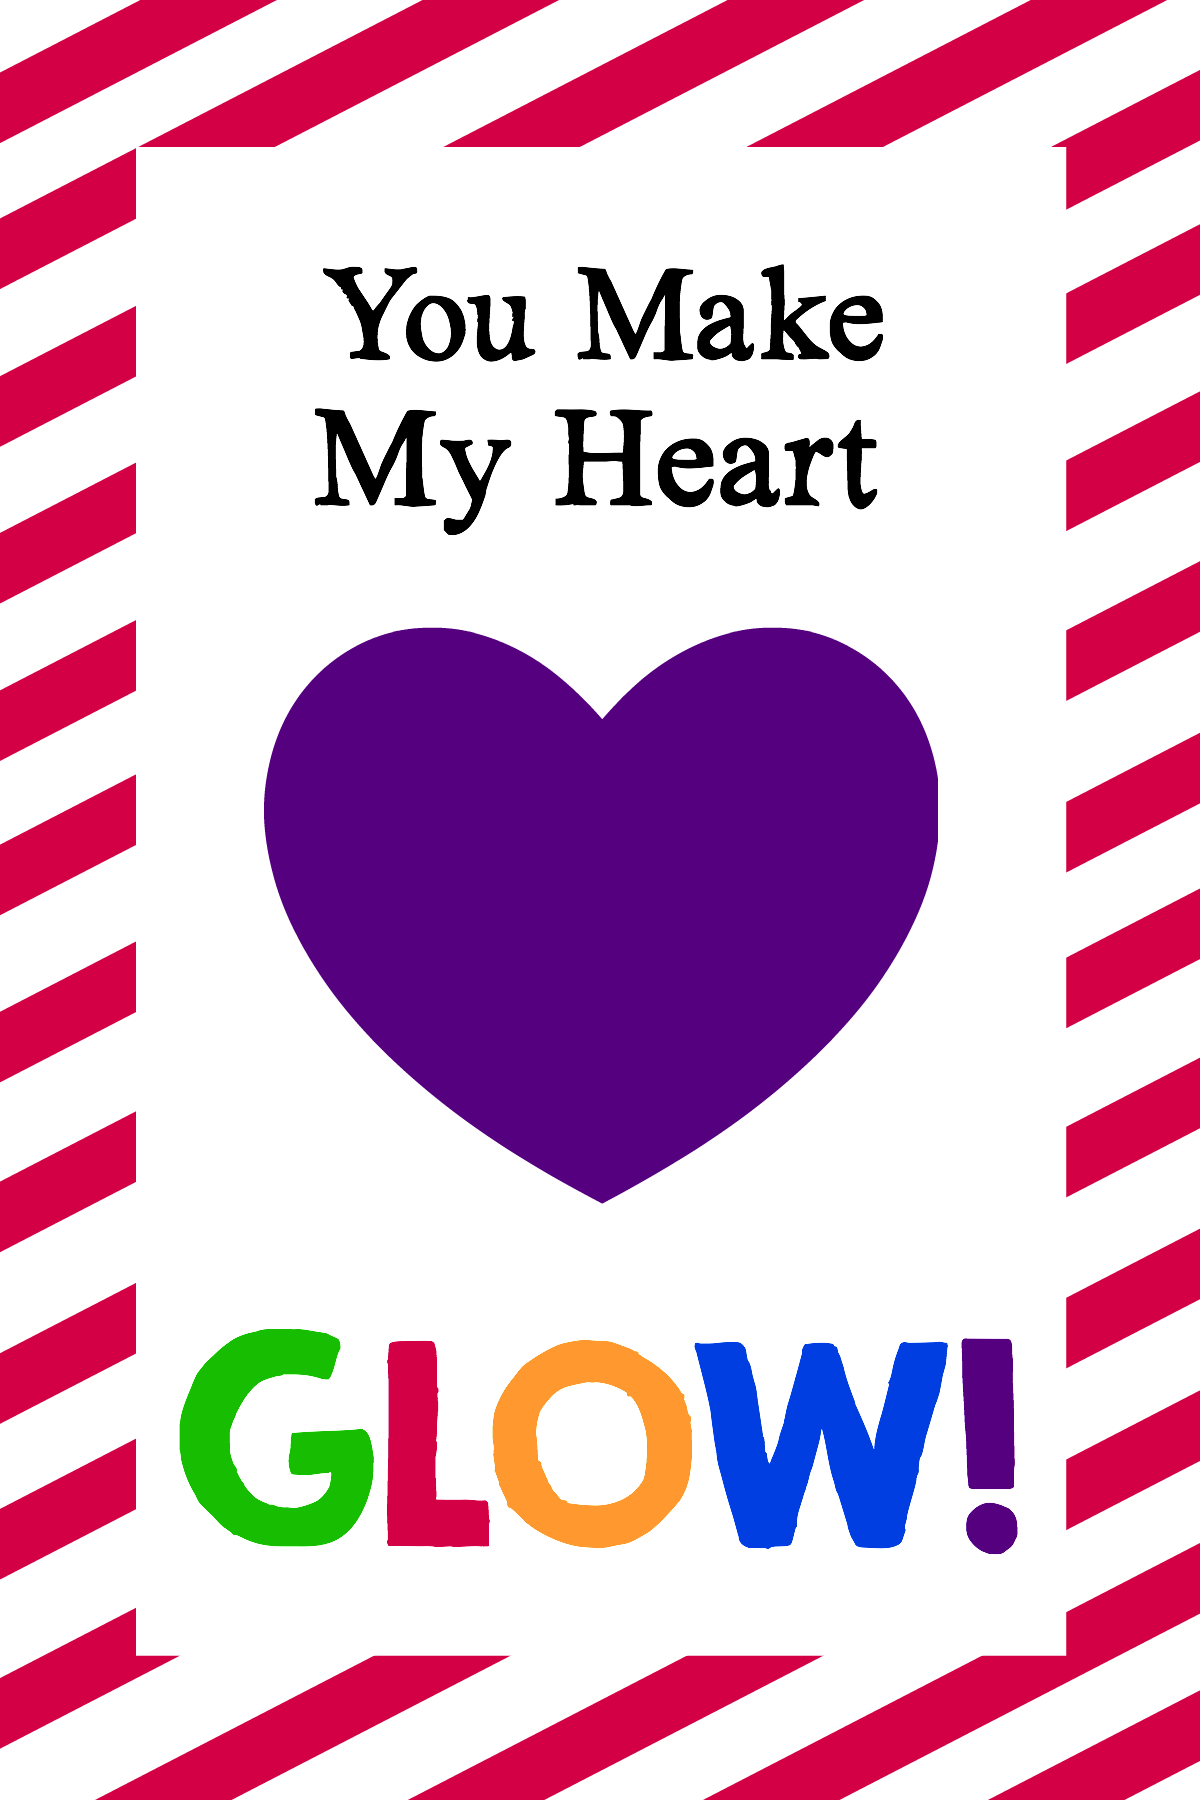 Make-My-Heart-Glow-Valentine-Red